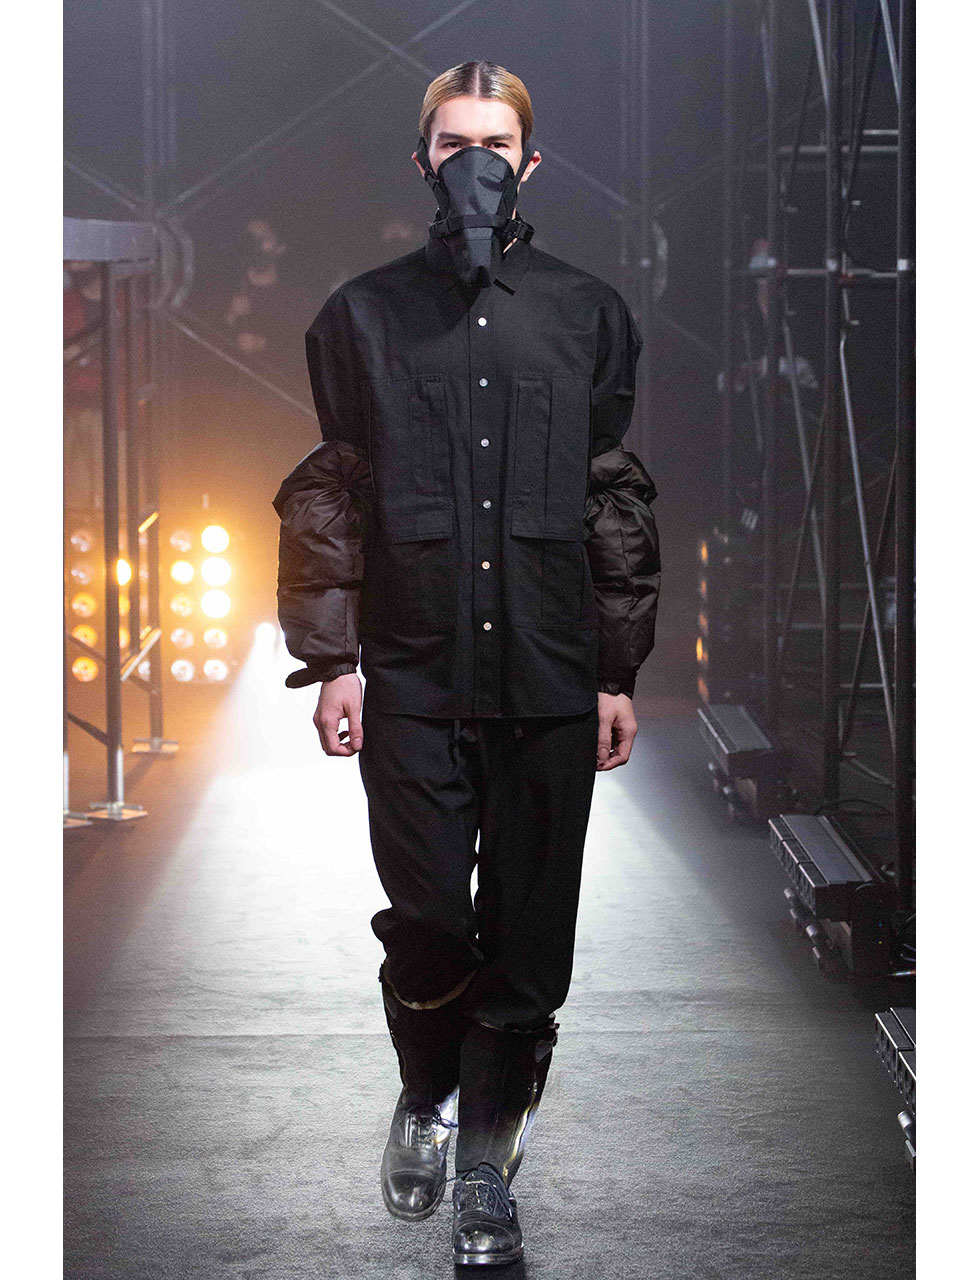 20AW/21SS COLLECTION